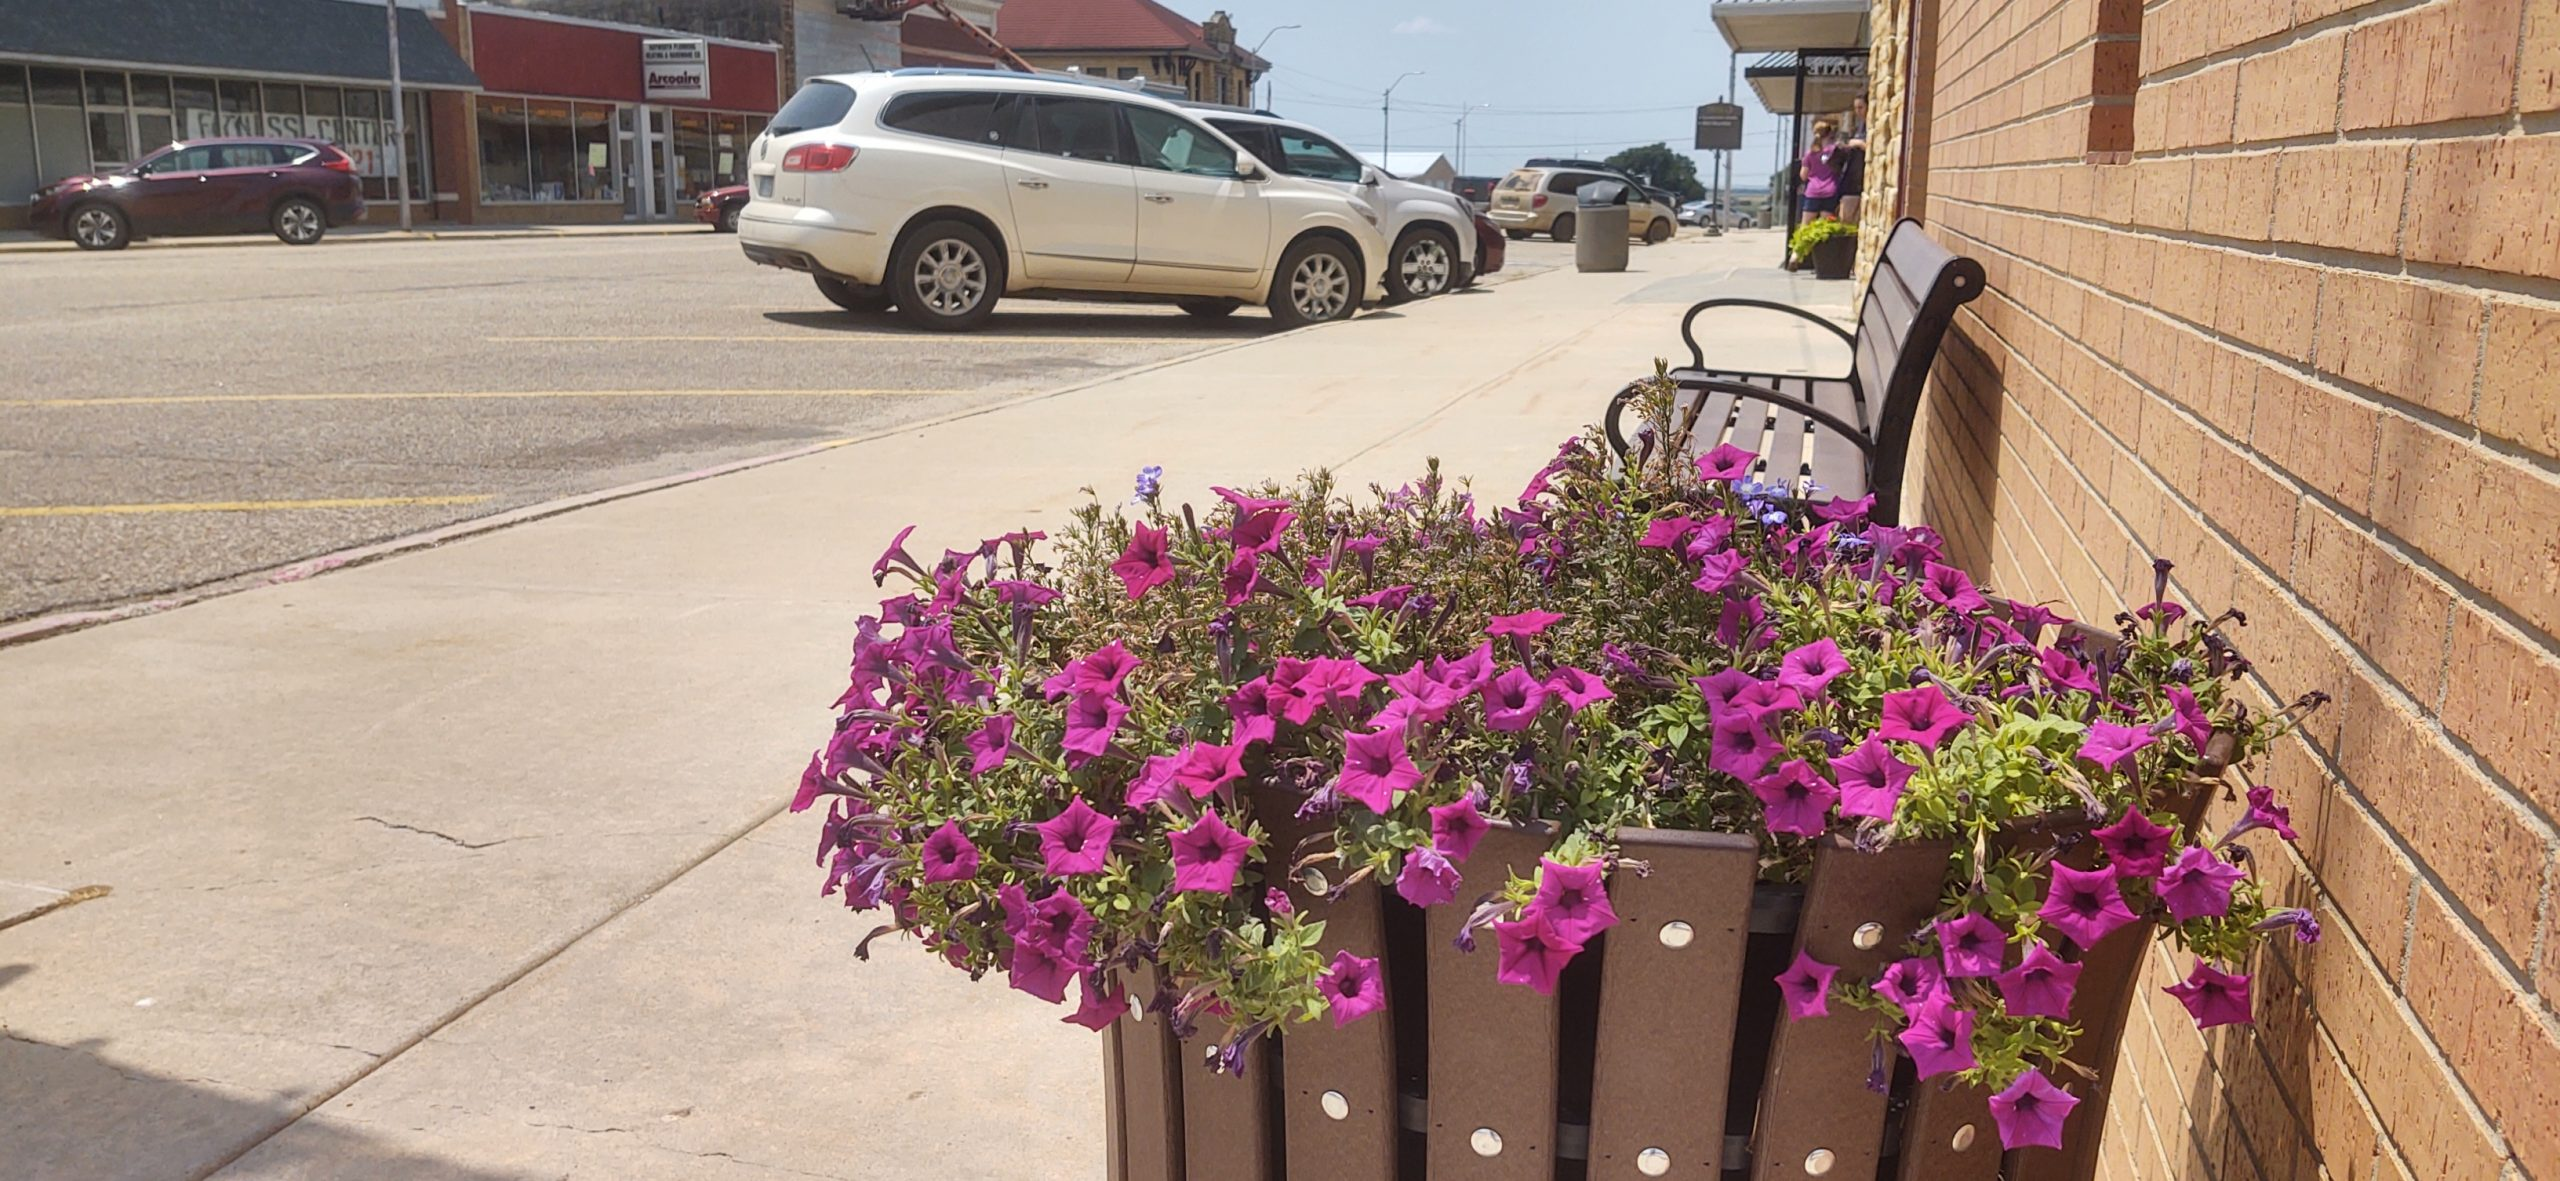 Lincoln PRIDE group flower pots and benches in downtown Lincoln, Kansas